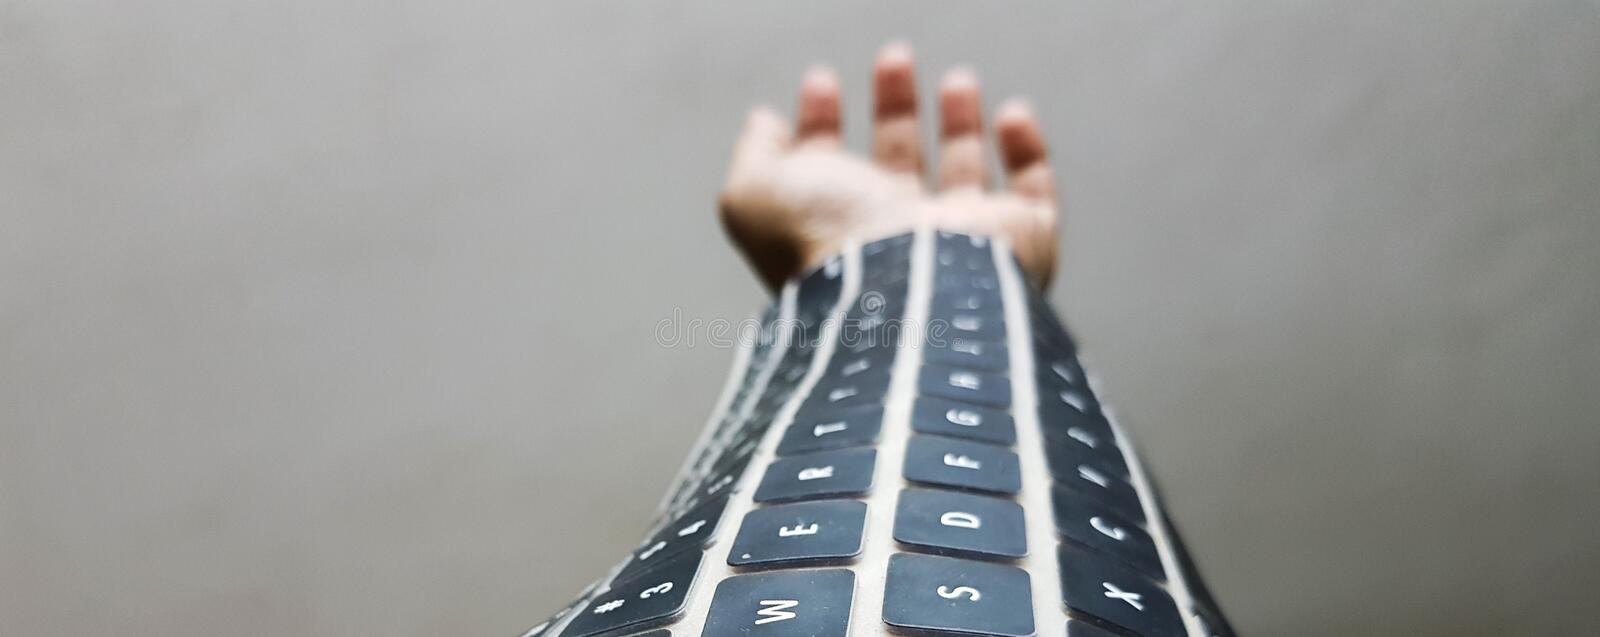 Wearable keyboard on arm. future wireless technology. On an arm of a man stock photography